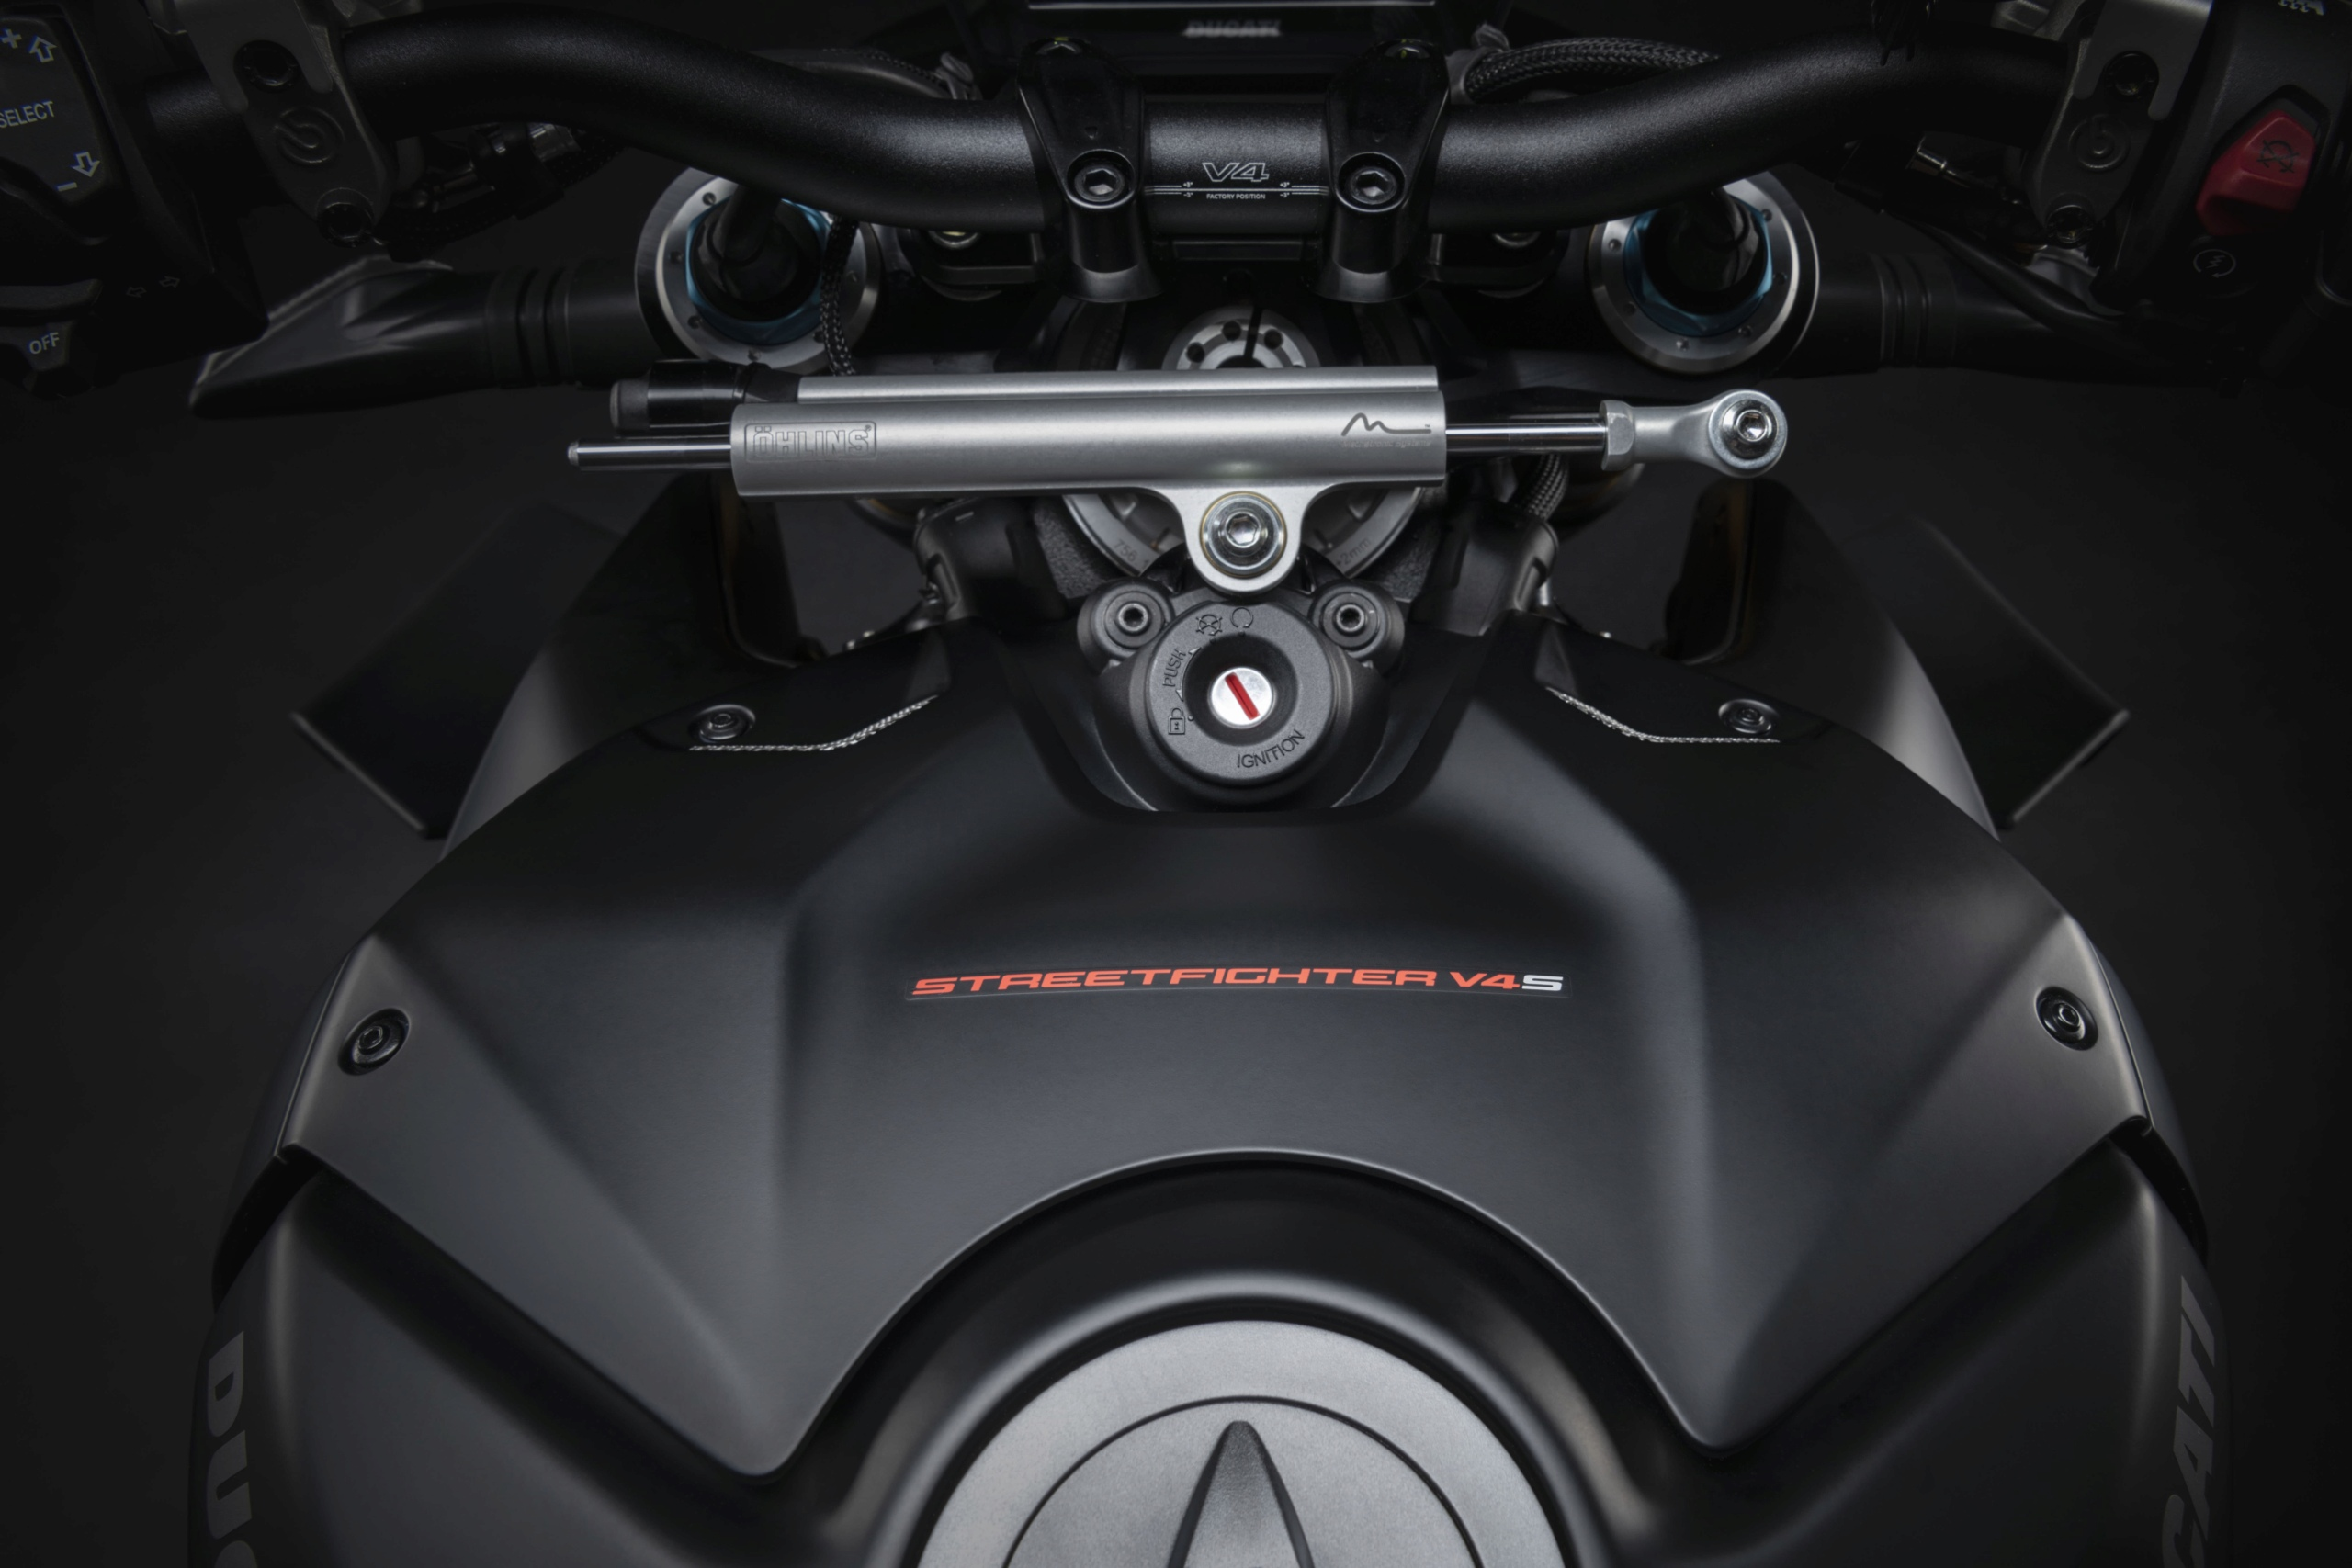 DUCATI Streetfighter V4 - Page 2 03_my210